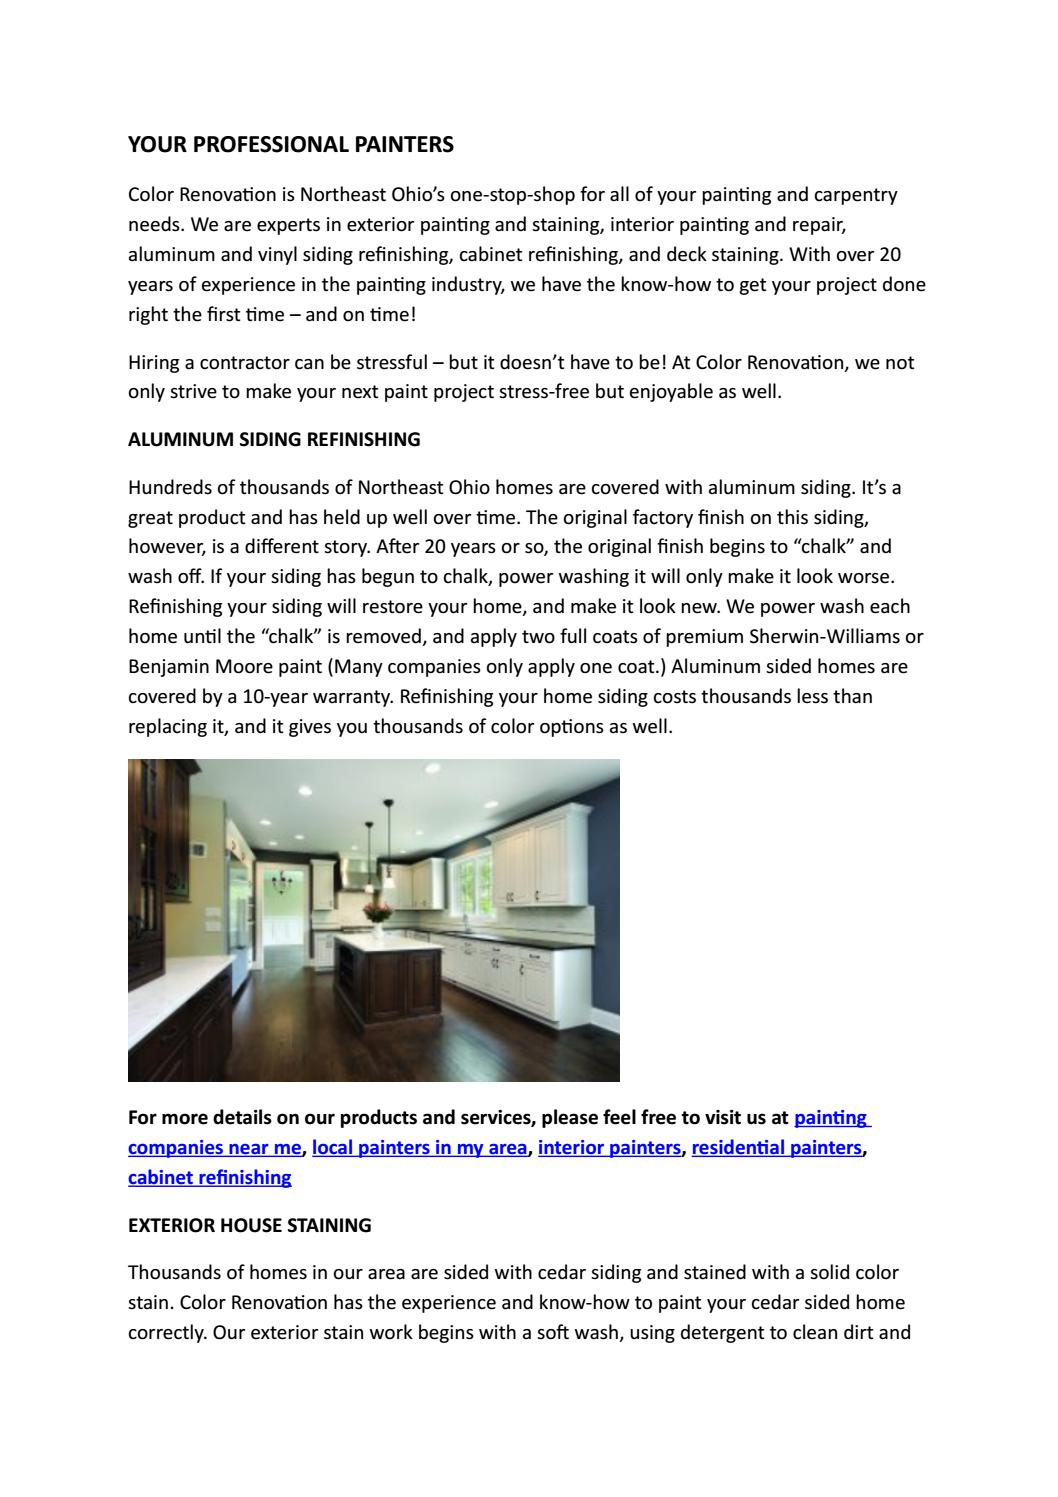 Your Professional Painters By Colorrenovation Issuu